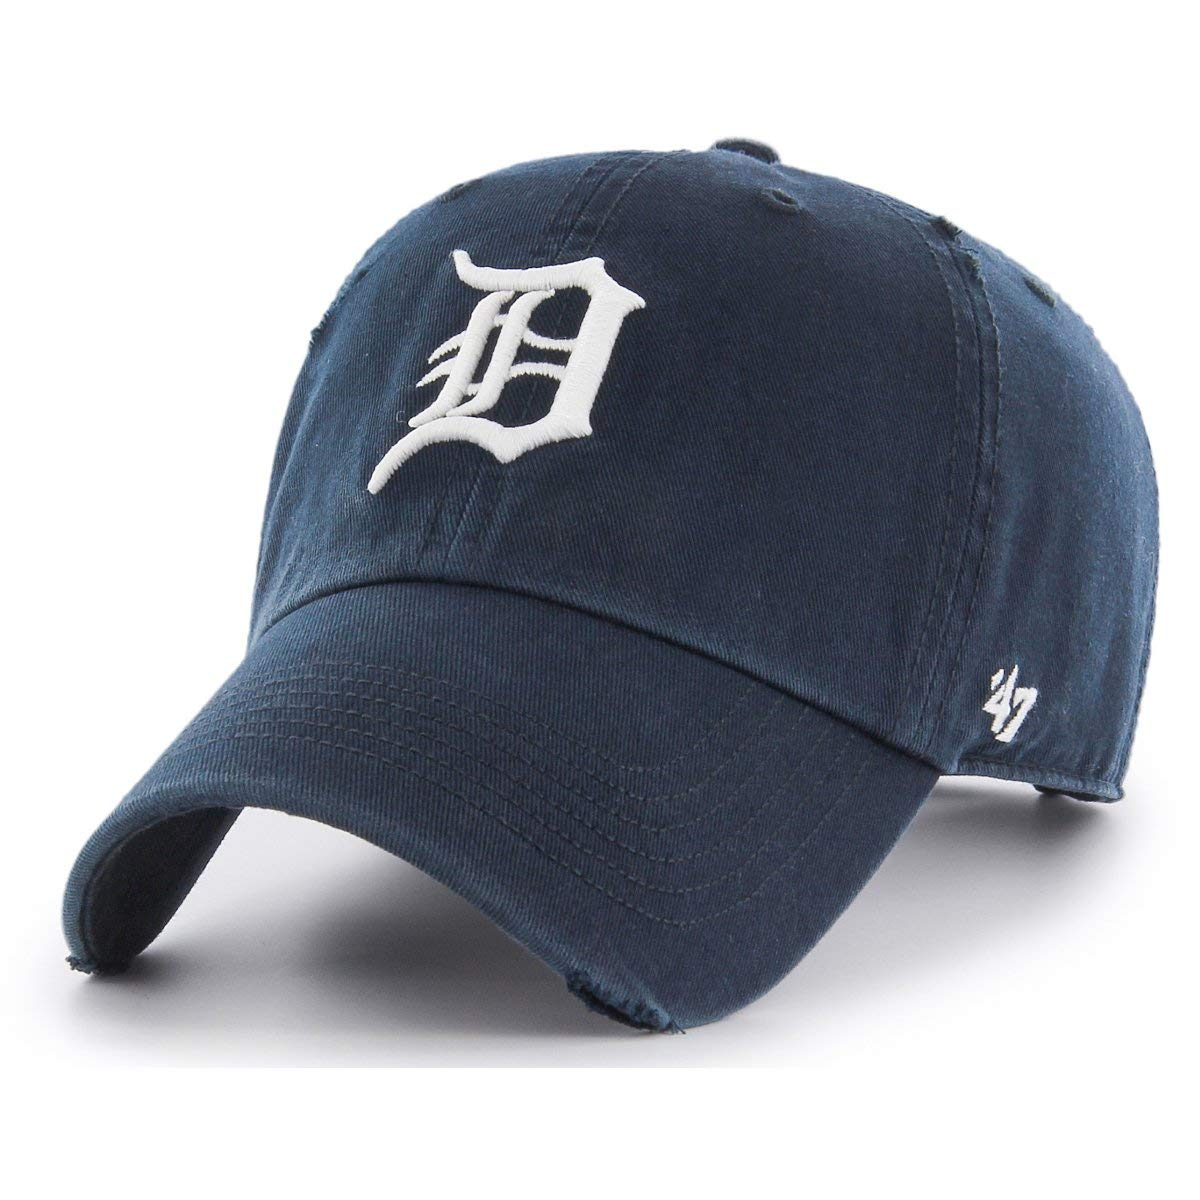 '47 Brand Relaxed Fit Cap - RIDGE Detroit Tigers navy